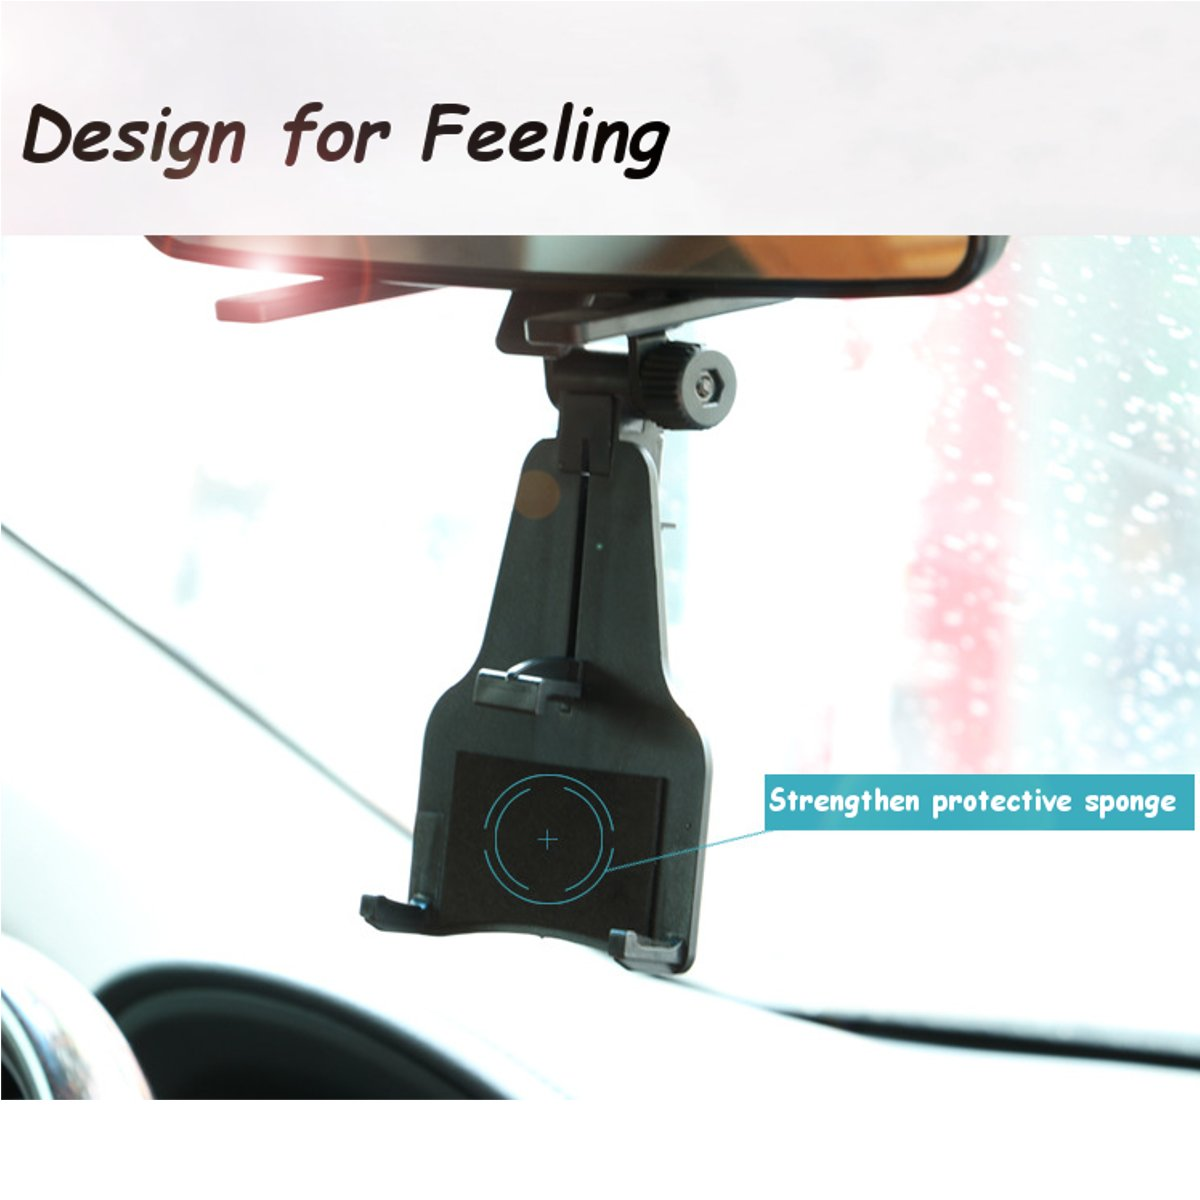 Universal Auto Car Rearview Mirror Mount Holder Phone Bracket for iPhone Samsung Xiaomi GPS